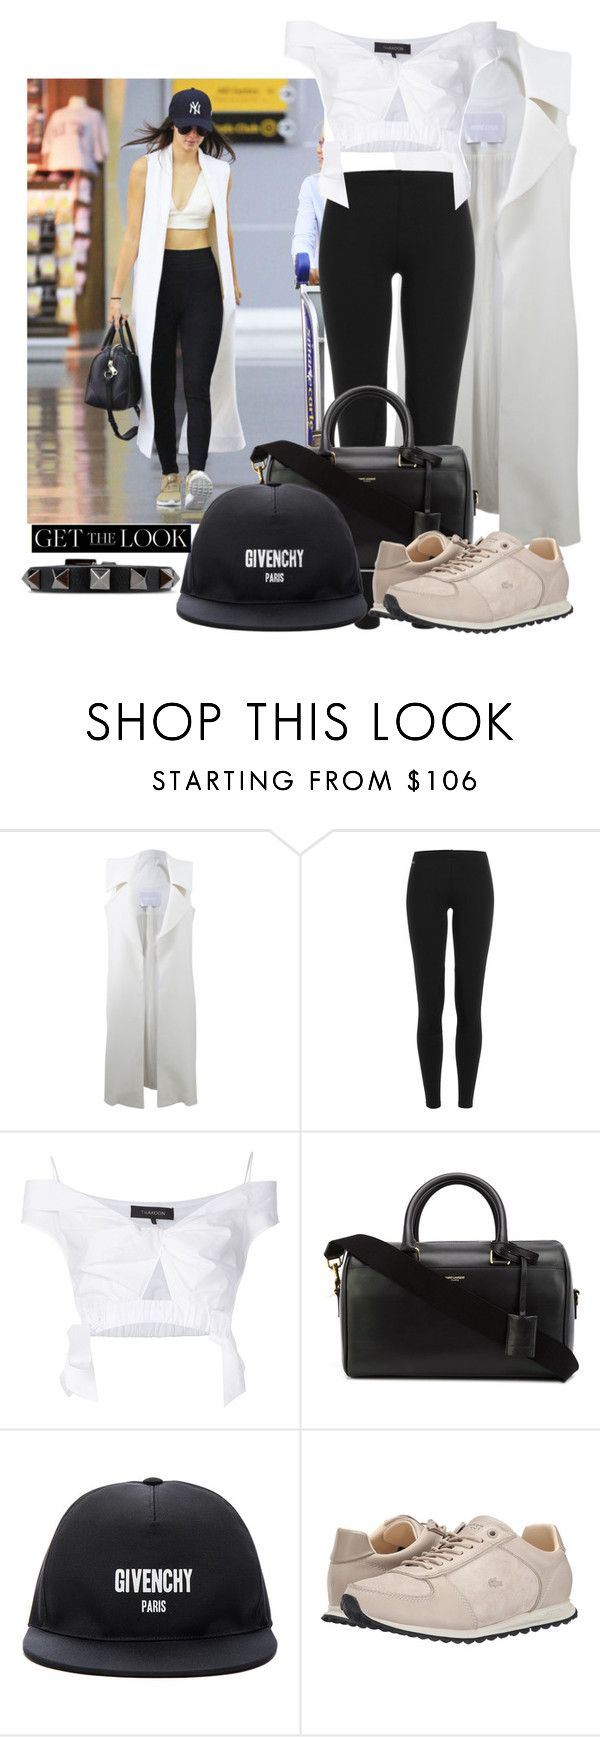 """""""Untitled #239"""" by elenarudometov ❤ liked on Polyvore featuring Cushnie Et Ochs, Polo Ralph Lauren, Thakoon, Yves Saint Laurent, Givenchy, Lacoste, Valentino, GetTheLook and hats"""